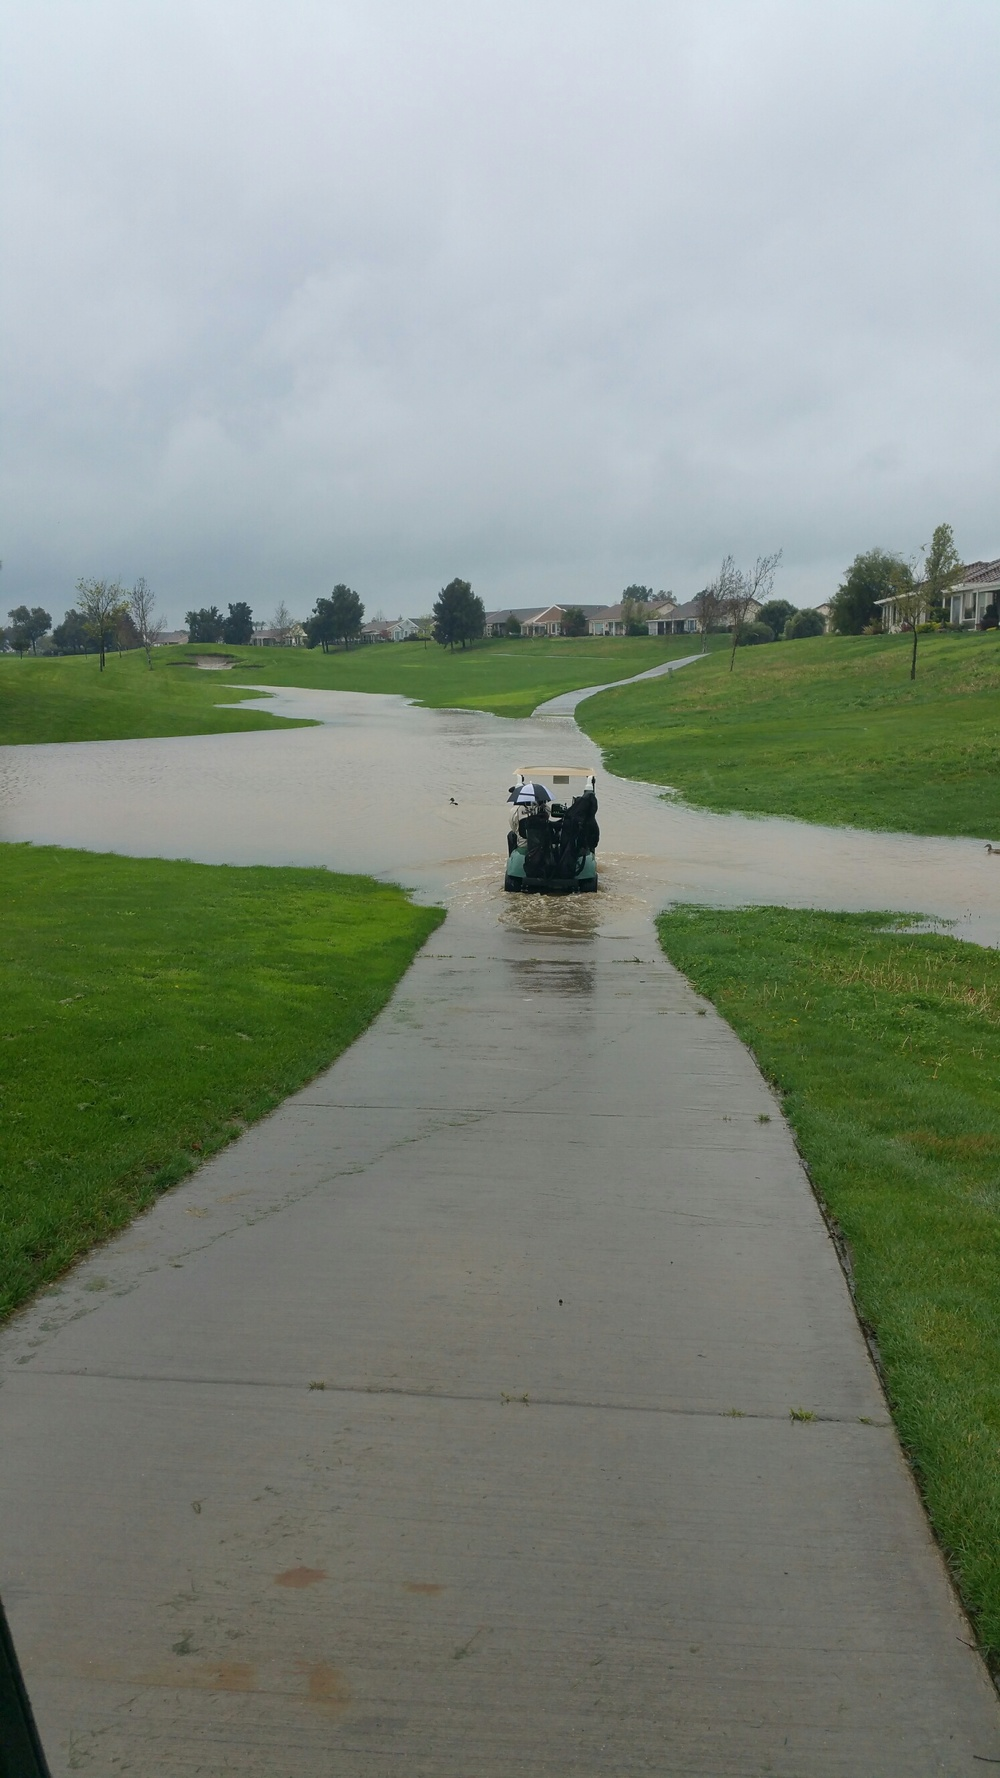 I think we should have got a boat instead. 2016 March tournament at Rio Vista GC.